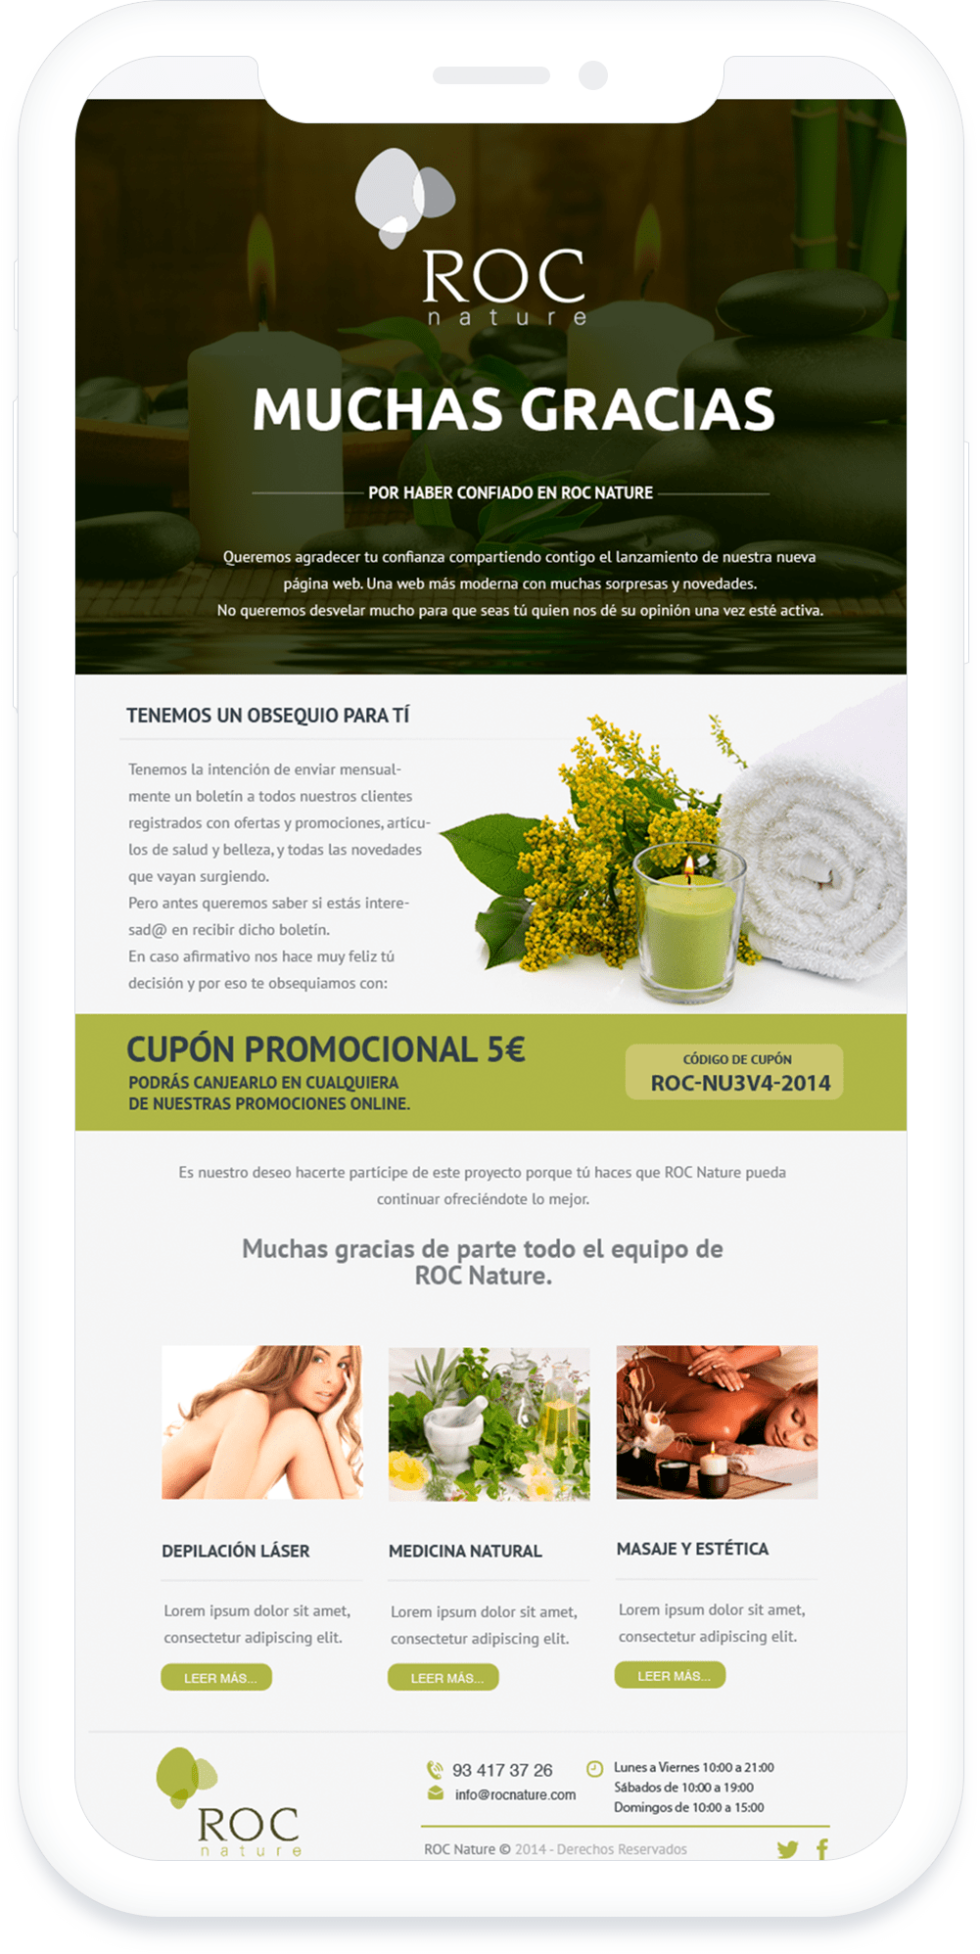 Image of ROC Nature website with the text Muchas Gracias